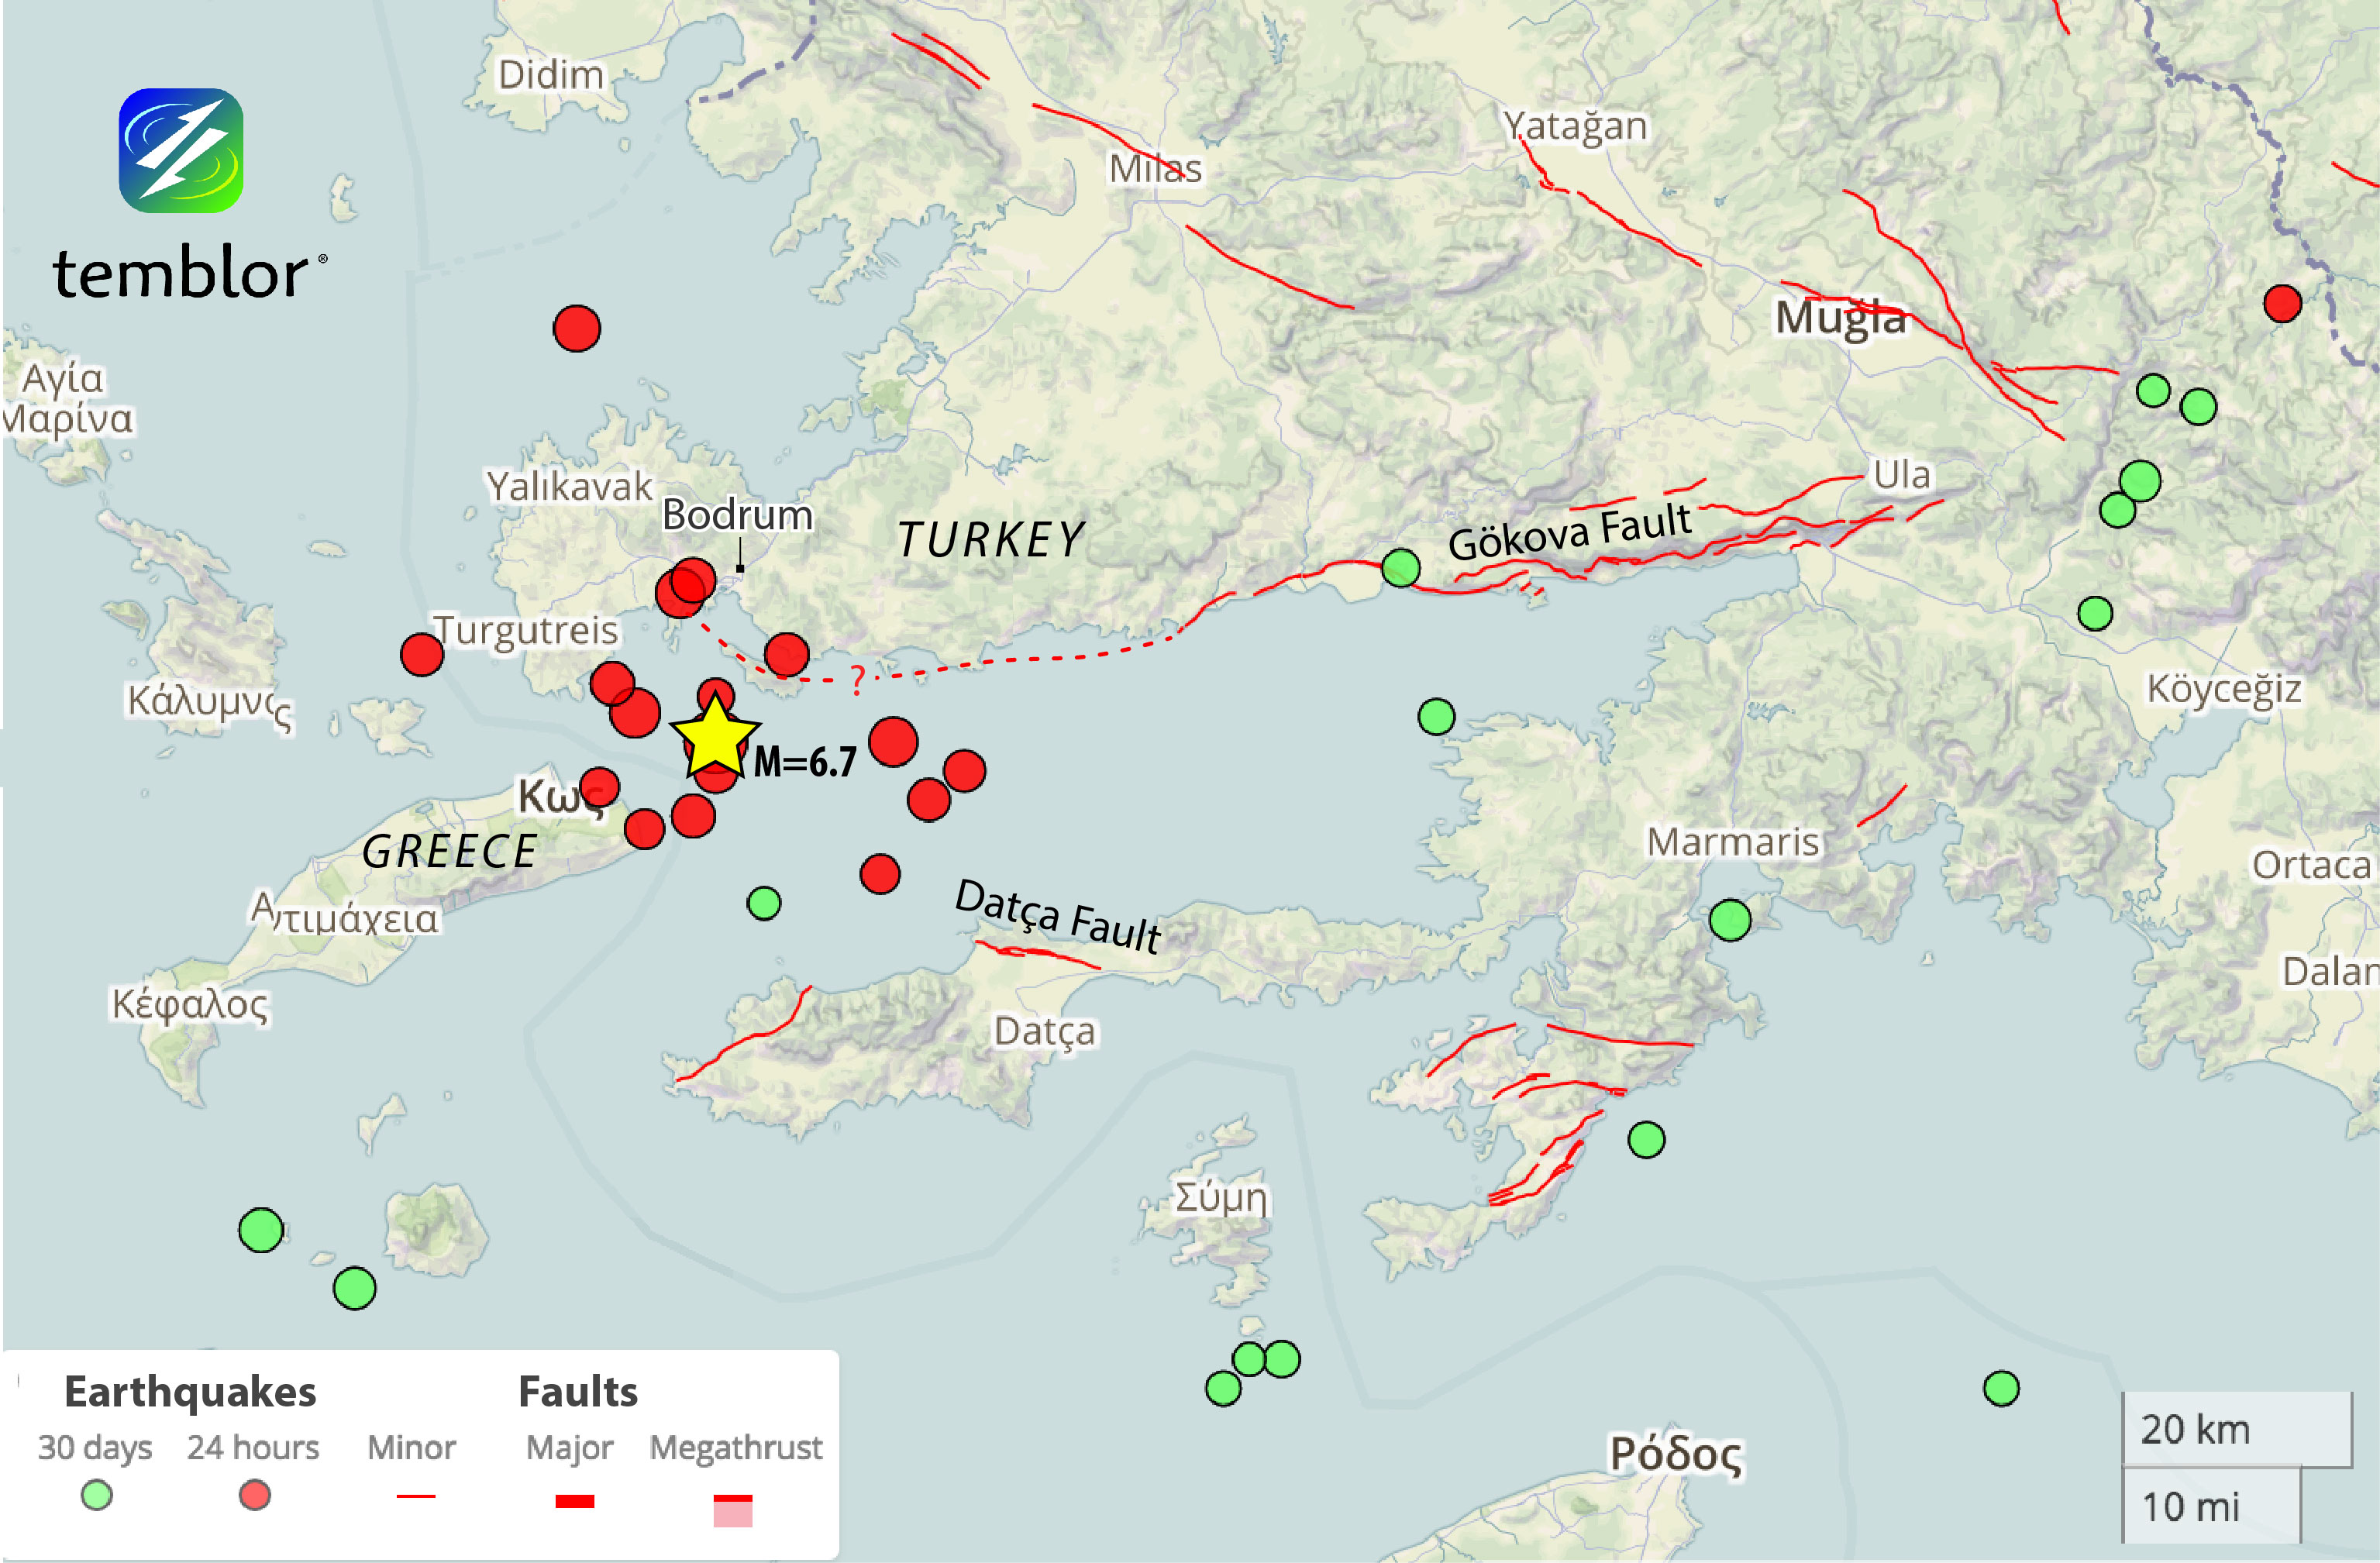 Earthquakes are from the European Mediterranean Seismic Centre (EMSC), and the faults are from the Turkish Mineral Research and Exploration Institute (MTA). We have dotted in the likely westward extension of the Gökova Fault. However, Kurt et al (1999) propose a set of smaller faults offshore, which could have instead been activated in this event.